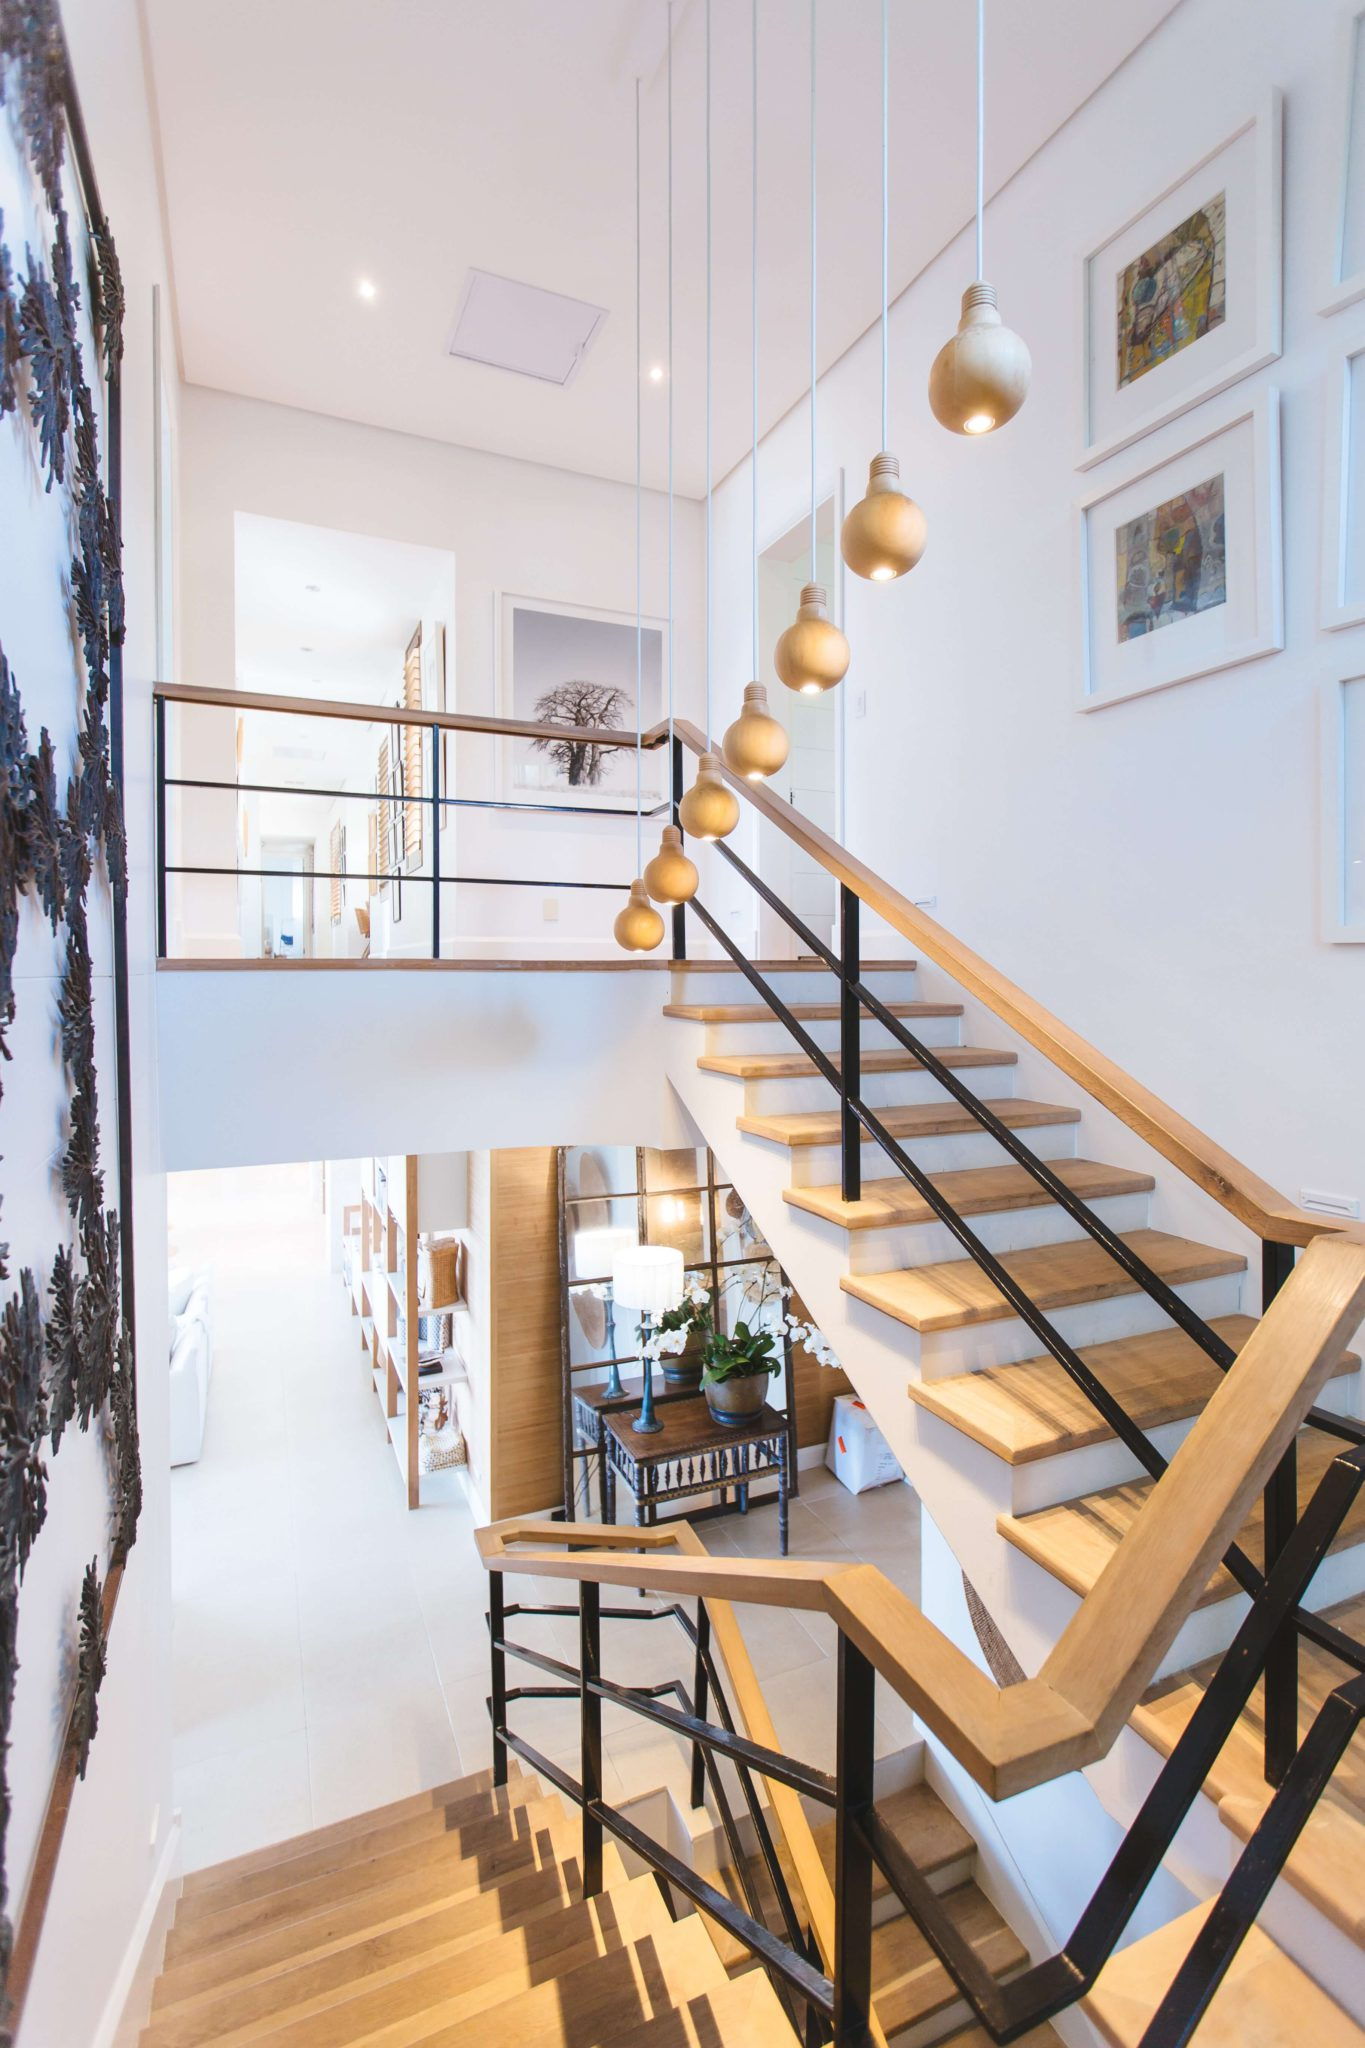 Loft Apartment with staircase